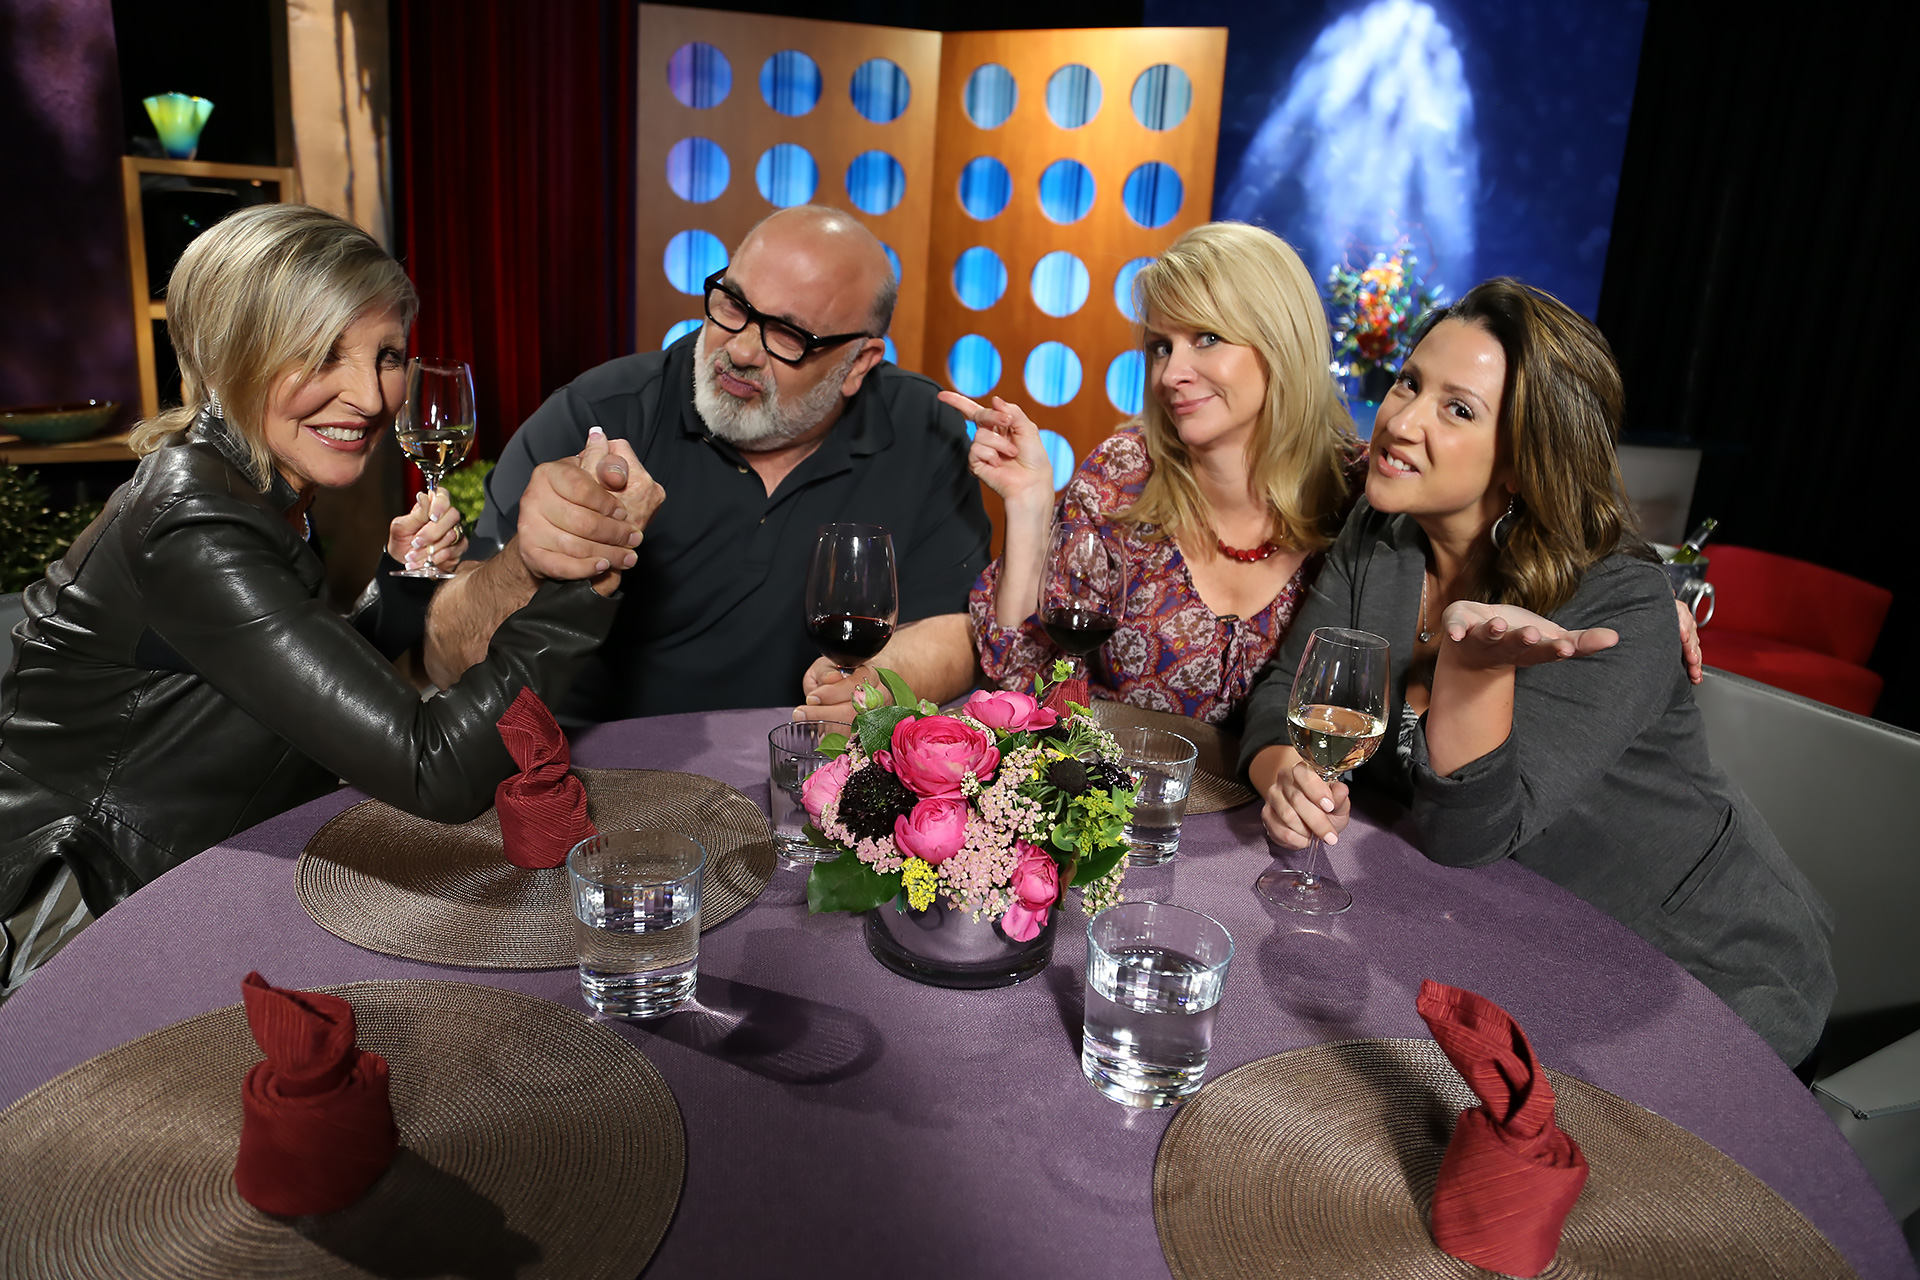 Host Leslie Sbrocco and guests having fun on the set of season 12 episode 18.